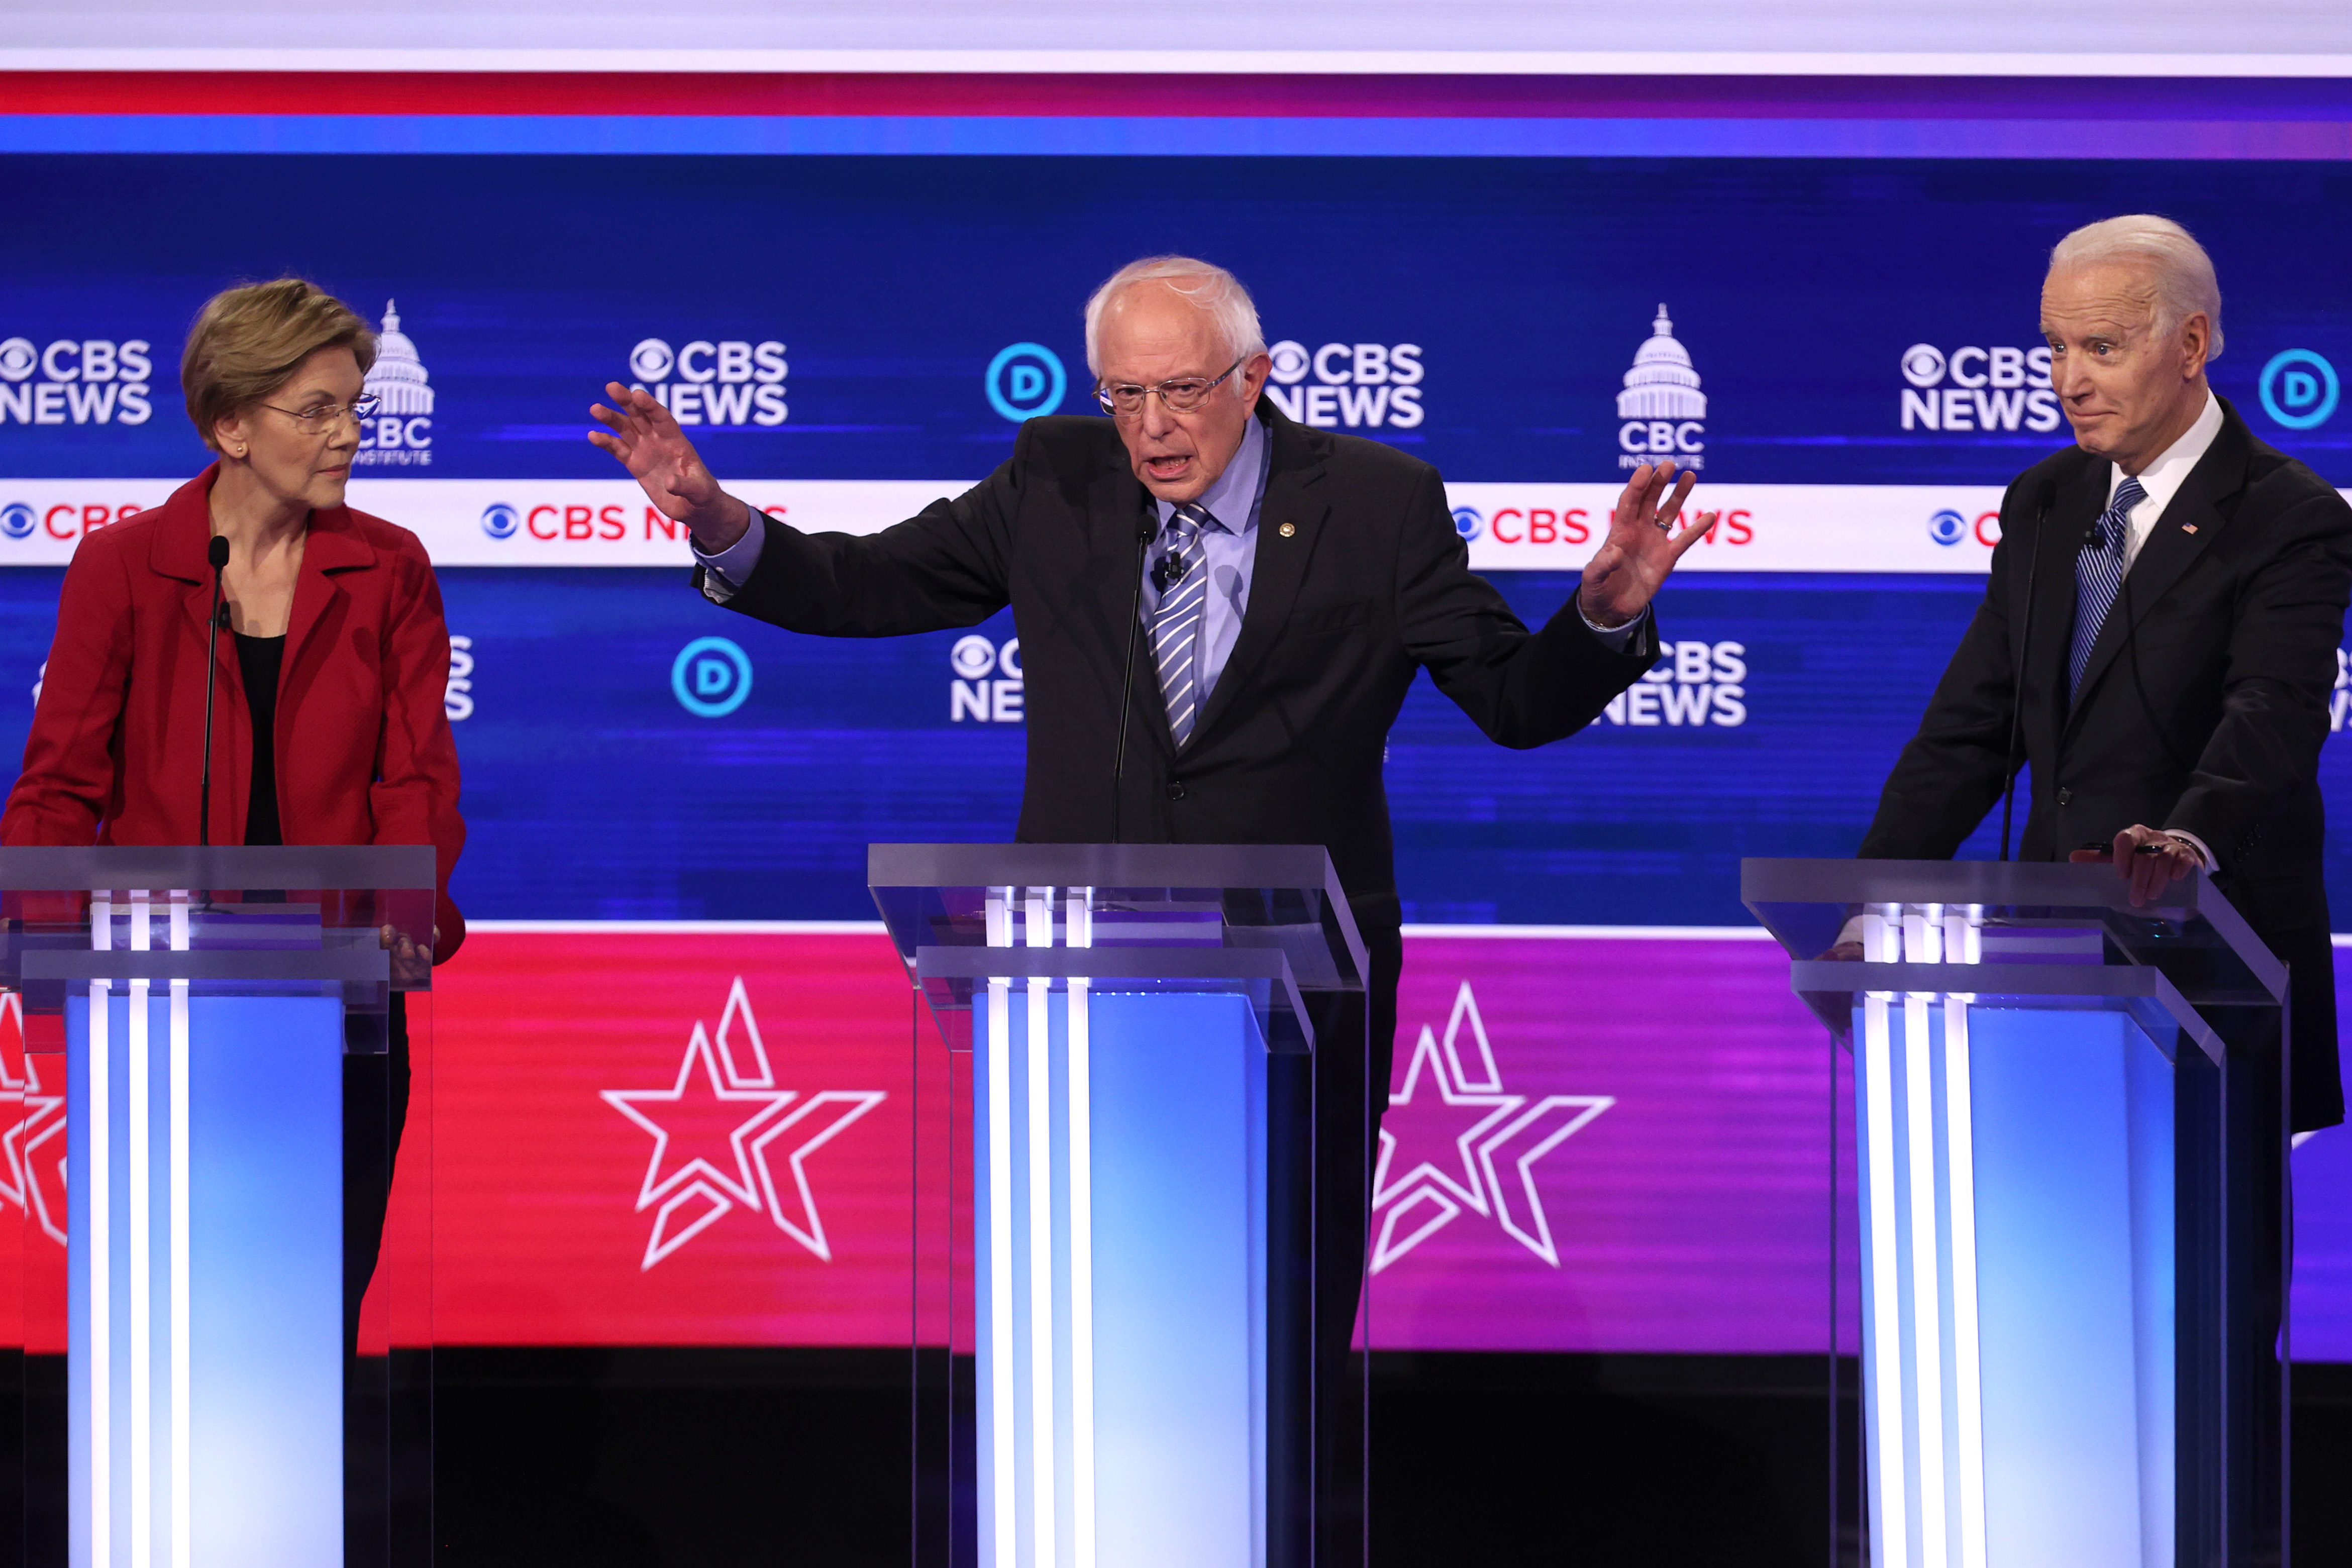 CHARLESTON, SOUTH CAROLINA - FEBRUARY 25: Democratic presidential candidate Sen. Bernie Sanders (I-VT) speaks as Sen. Elizabeth Warren (D-MA) (L) and former Vice President Joe Biden (R) look on during the Democratic presidential primary debate at the Charleston Gaillard Center on February 25, 2020 in Charleston, South Carolina. Seven candidates qualified for the debate, hosted by CBS News and Congressional Black Caucus Institute, ahead of South Carolina's primary in four days. (Photo by Win McNamee/Getty Images)